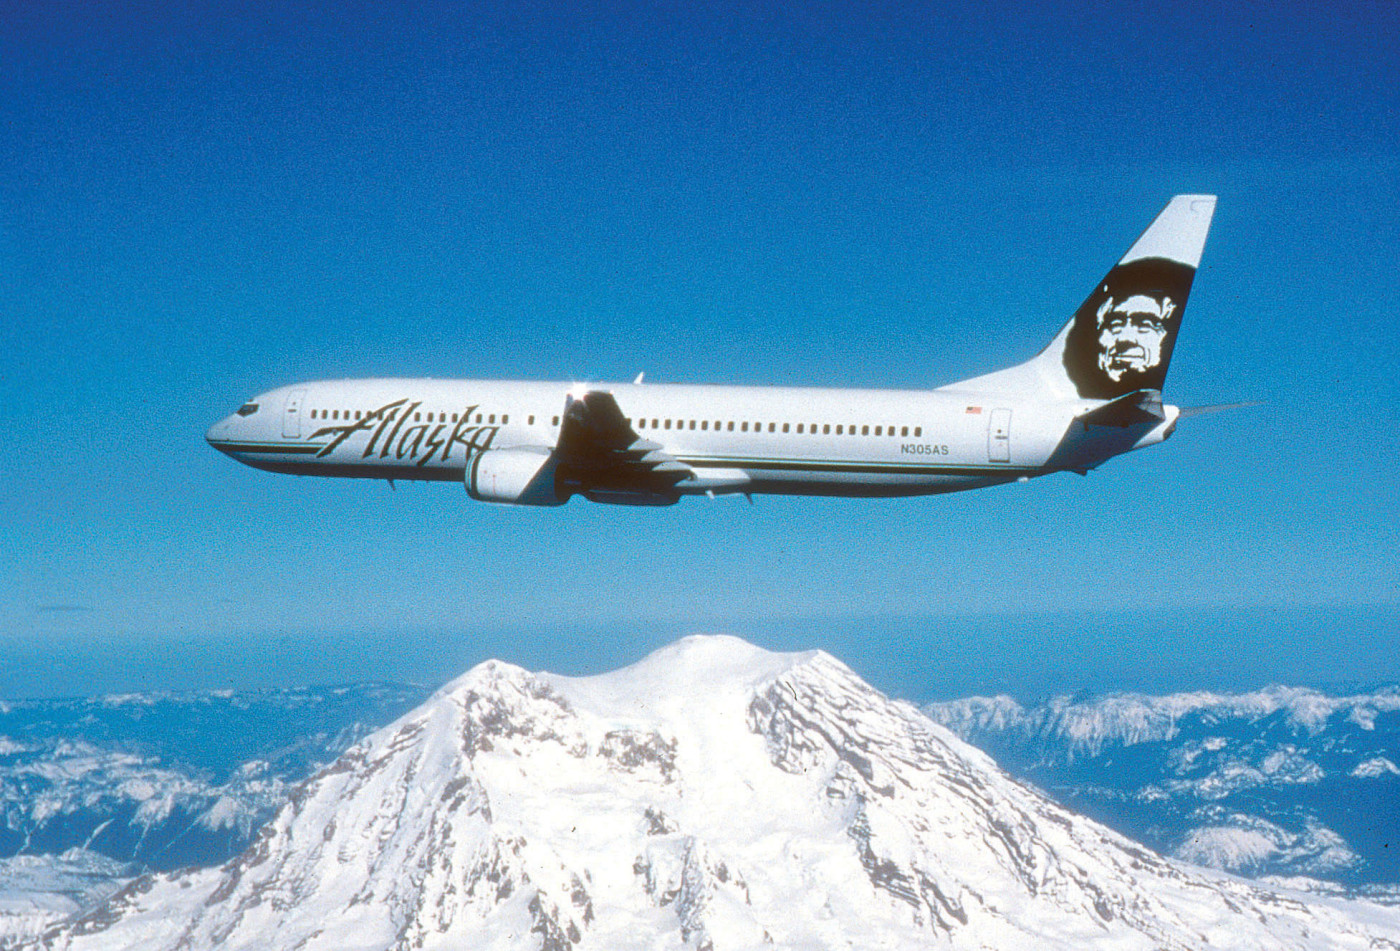 Alaska Airlines Took Home The Top Prize For Both Former And Latter While This Is Impressive It Important To Recognize Achievement